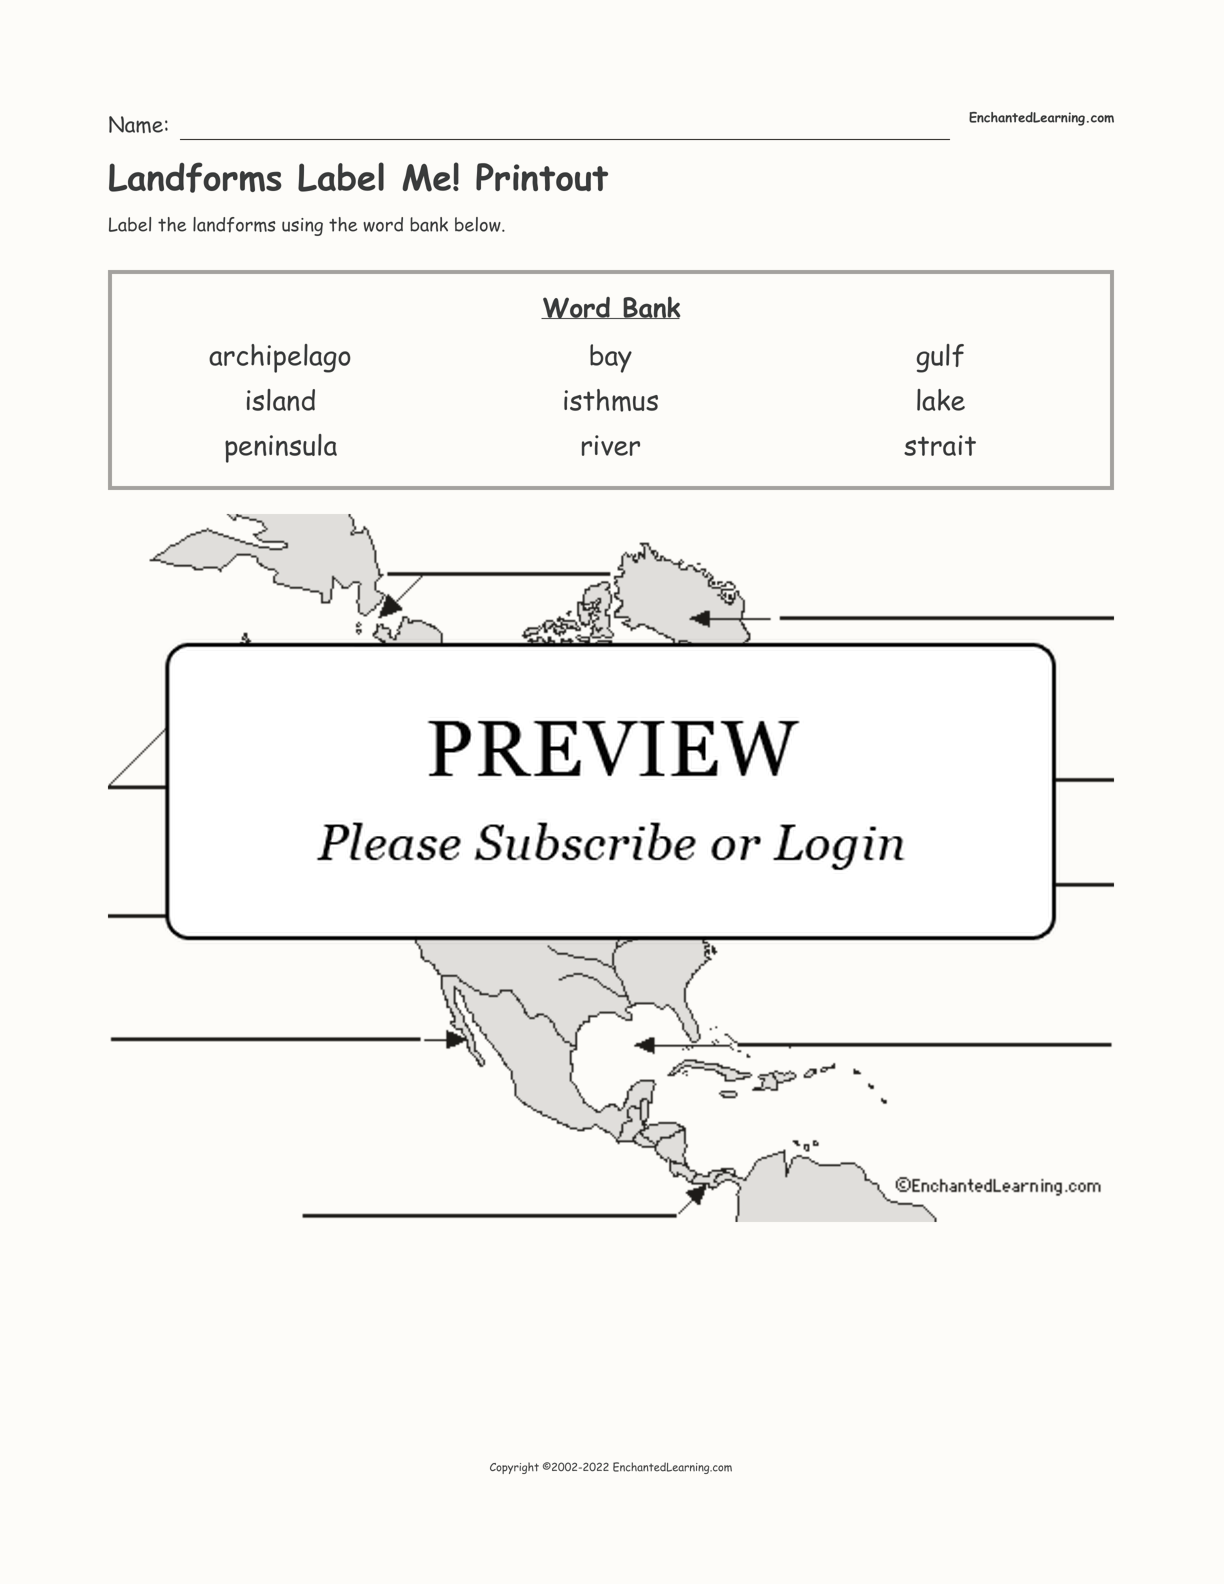 Landforms Label Me! Printout interactive worksheet page 1